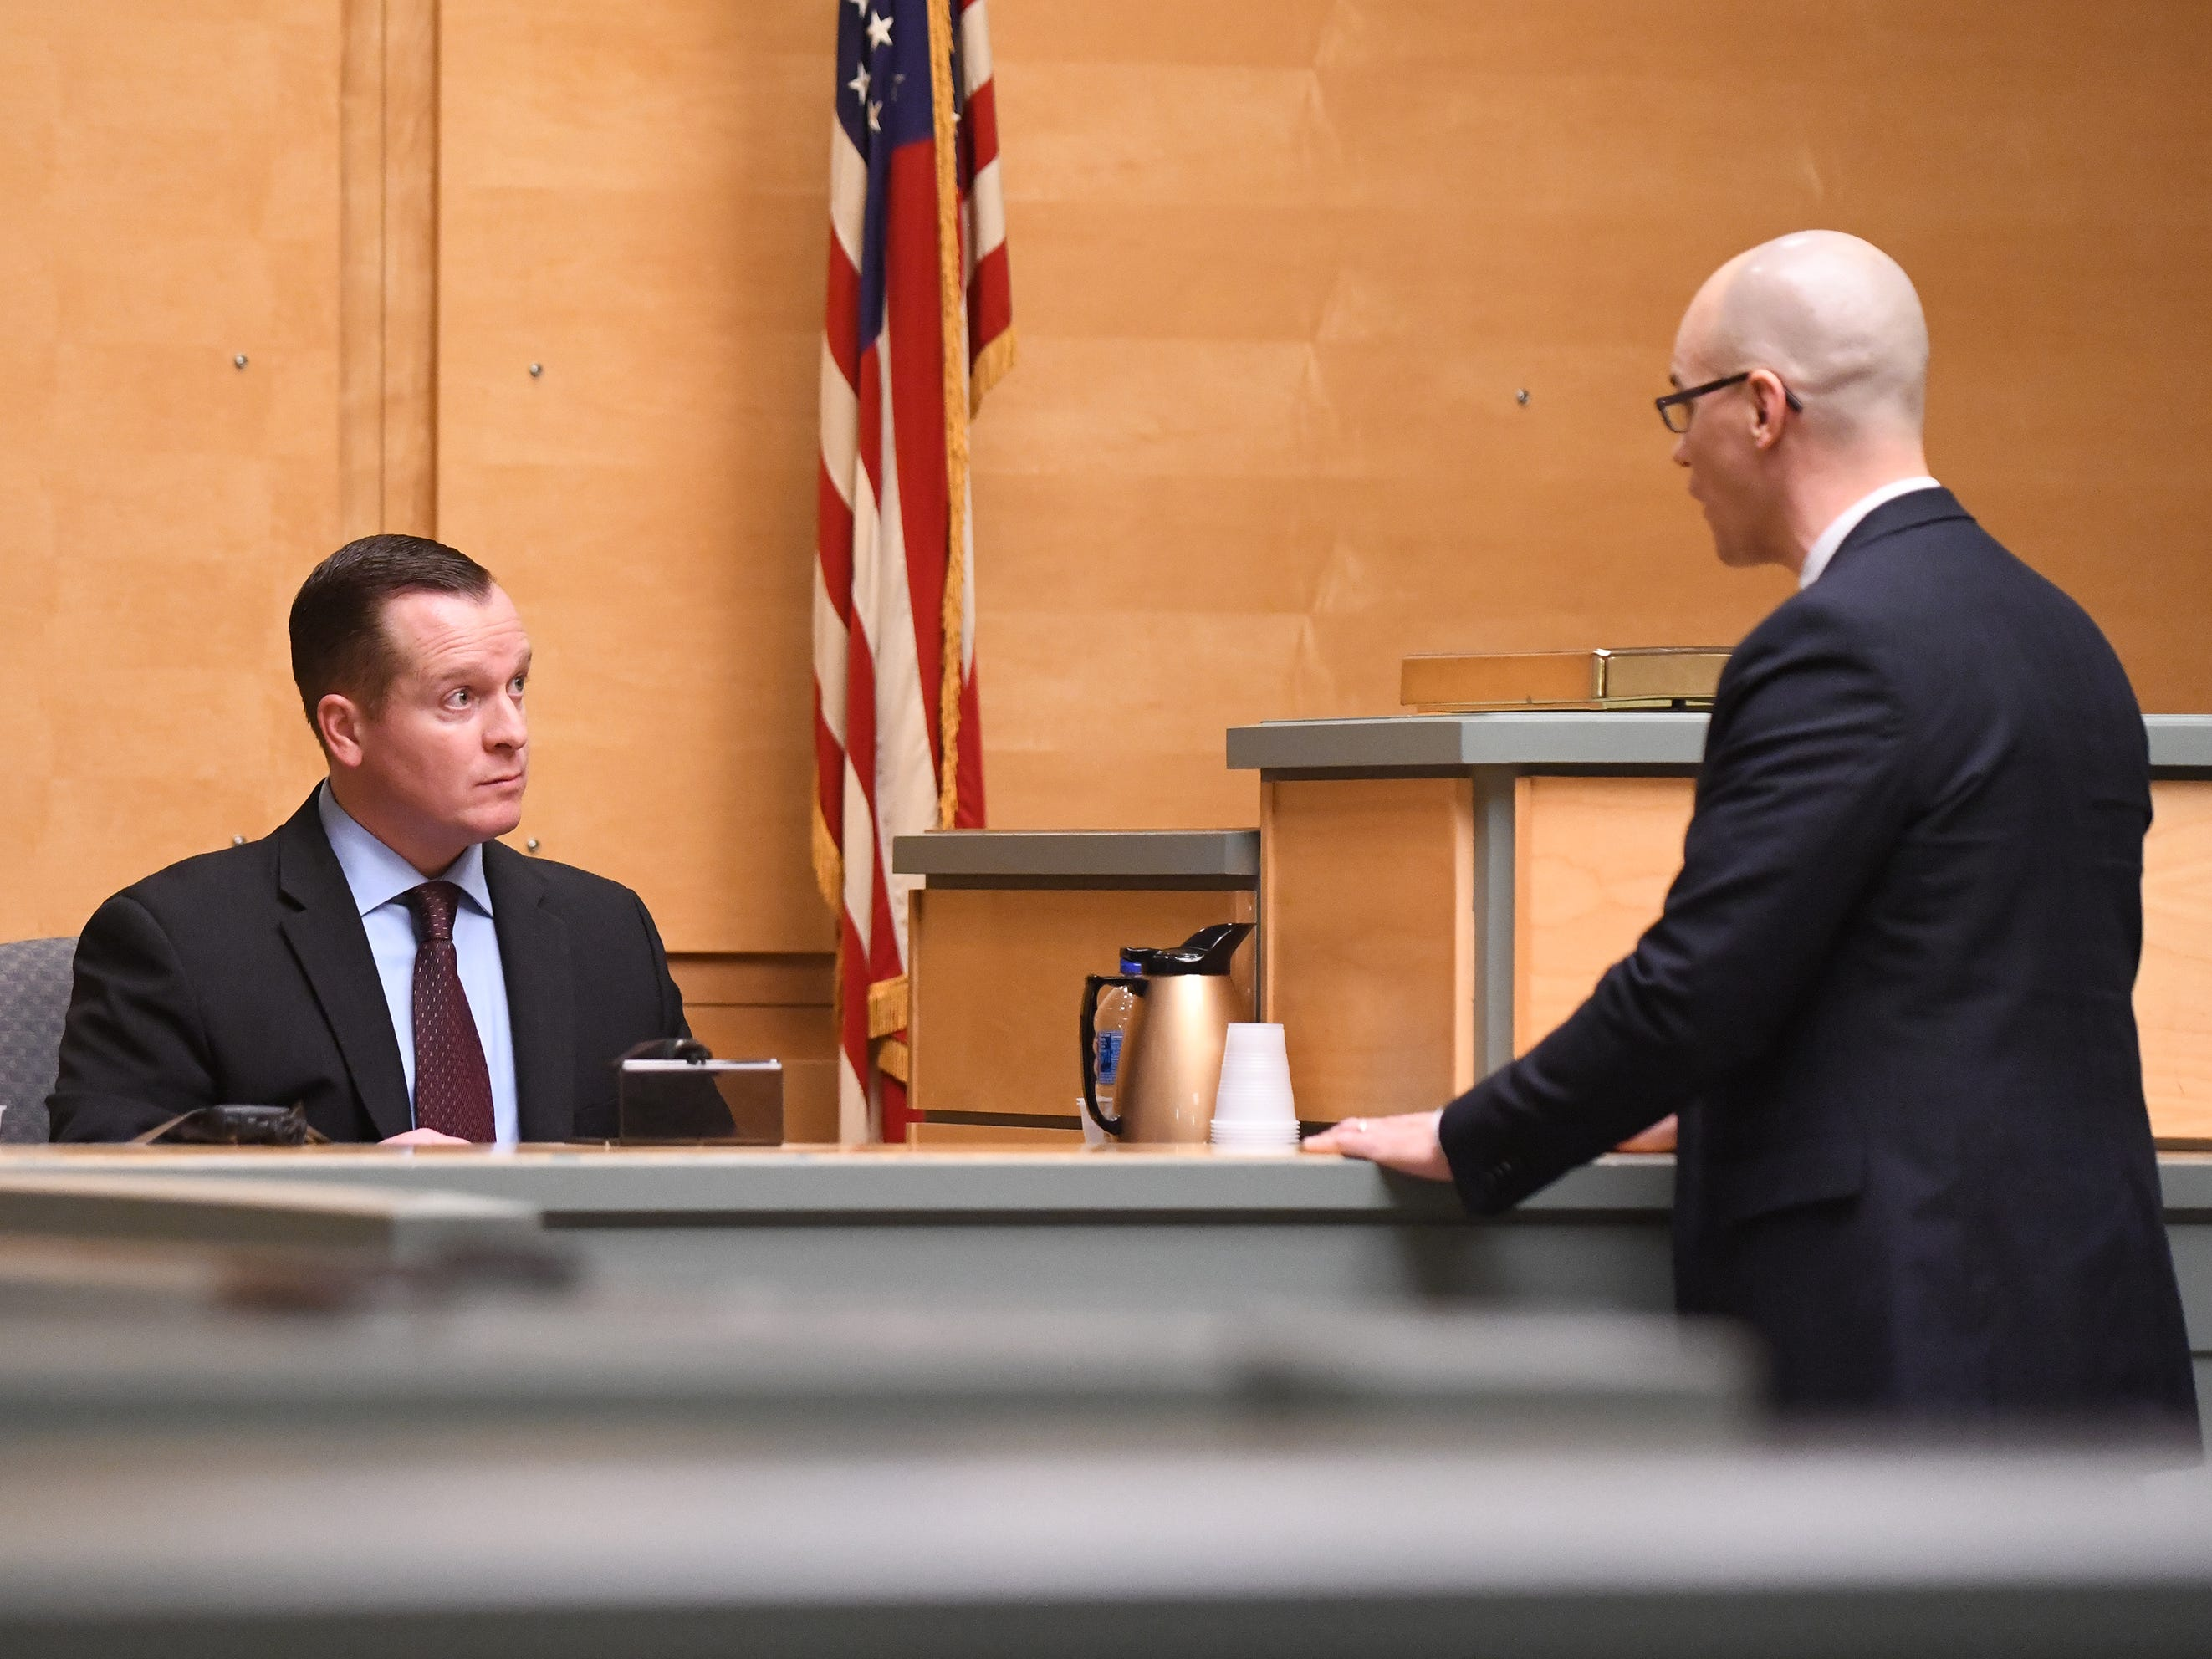 County Assistant Prosecutor Charles Wettstein (right) speaks with New Jersey State Police detective Sgt. Eric Crain regarding crime scene photos during trial on Thursday, January 3, 2019.